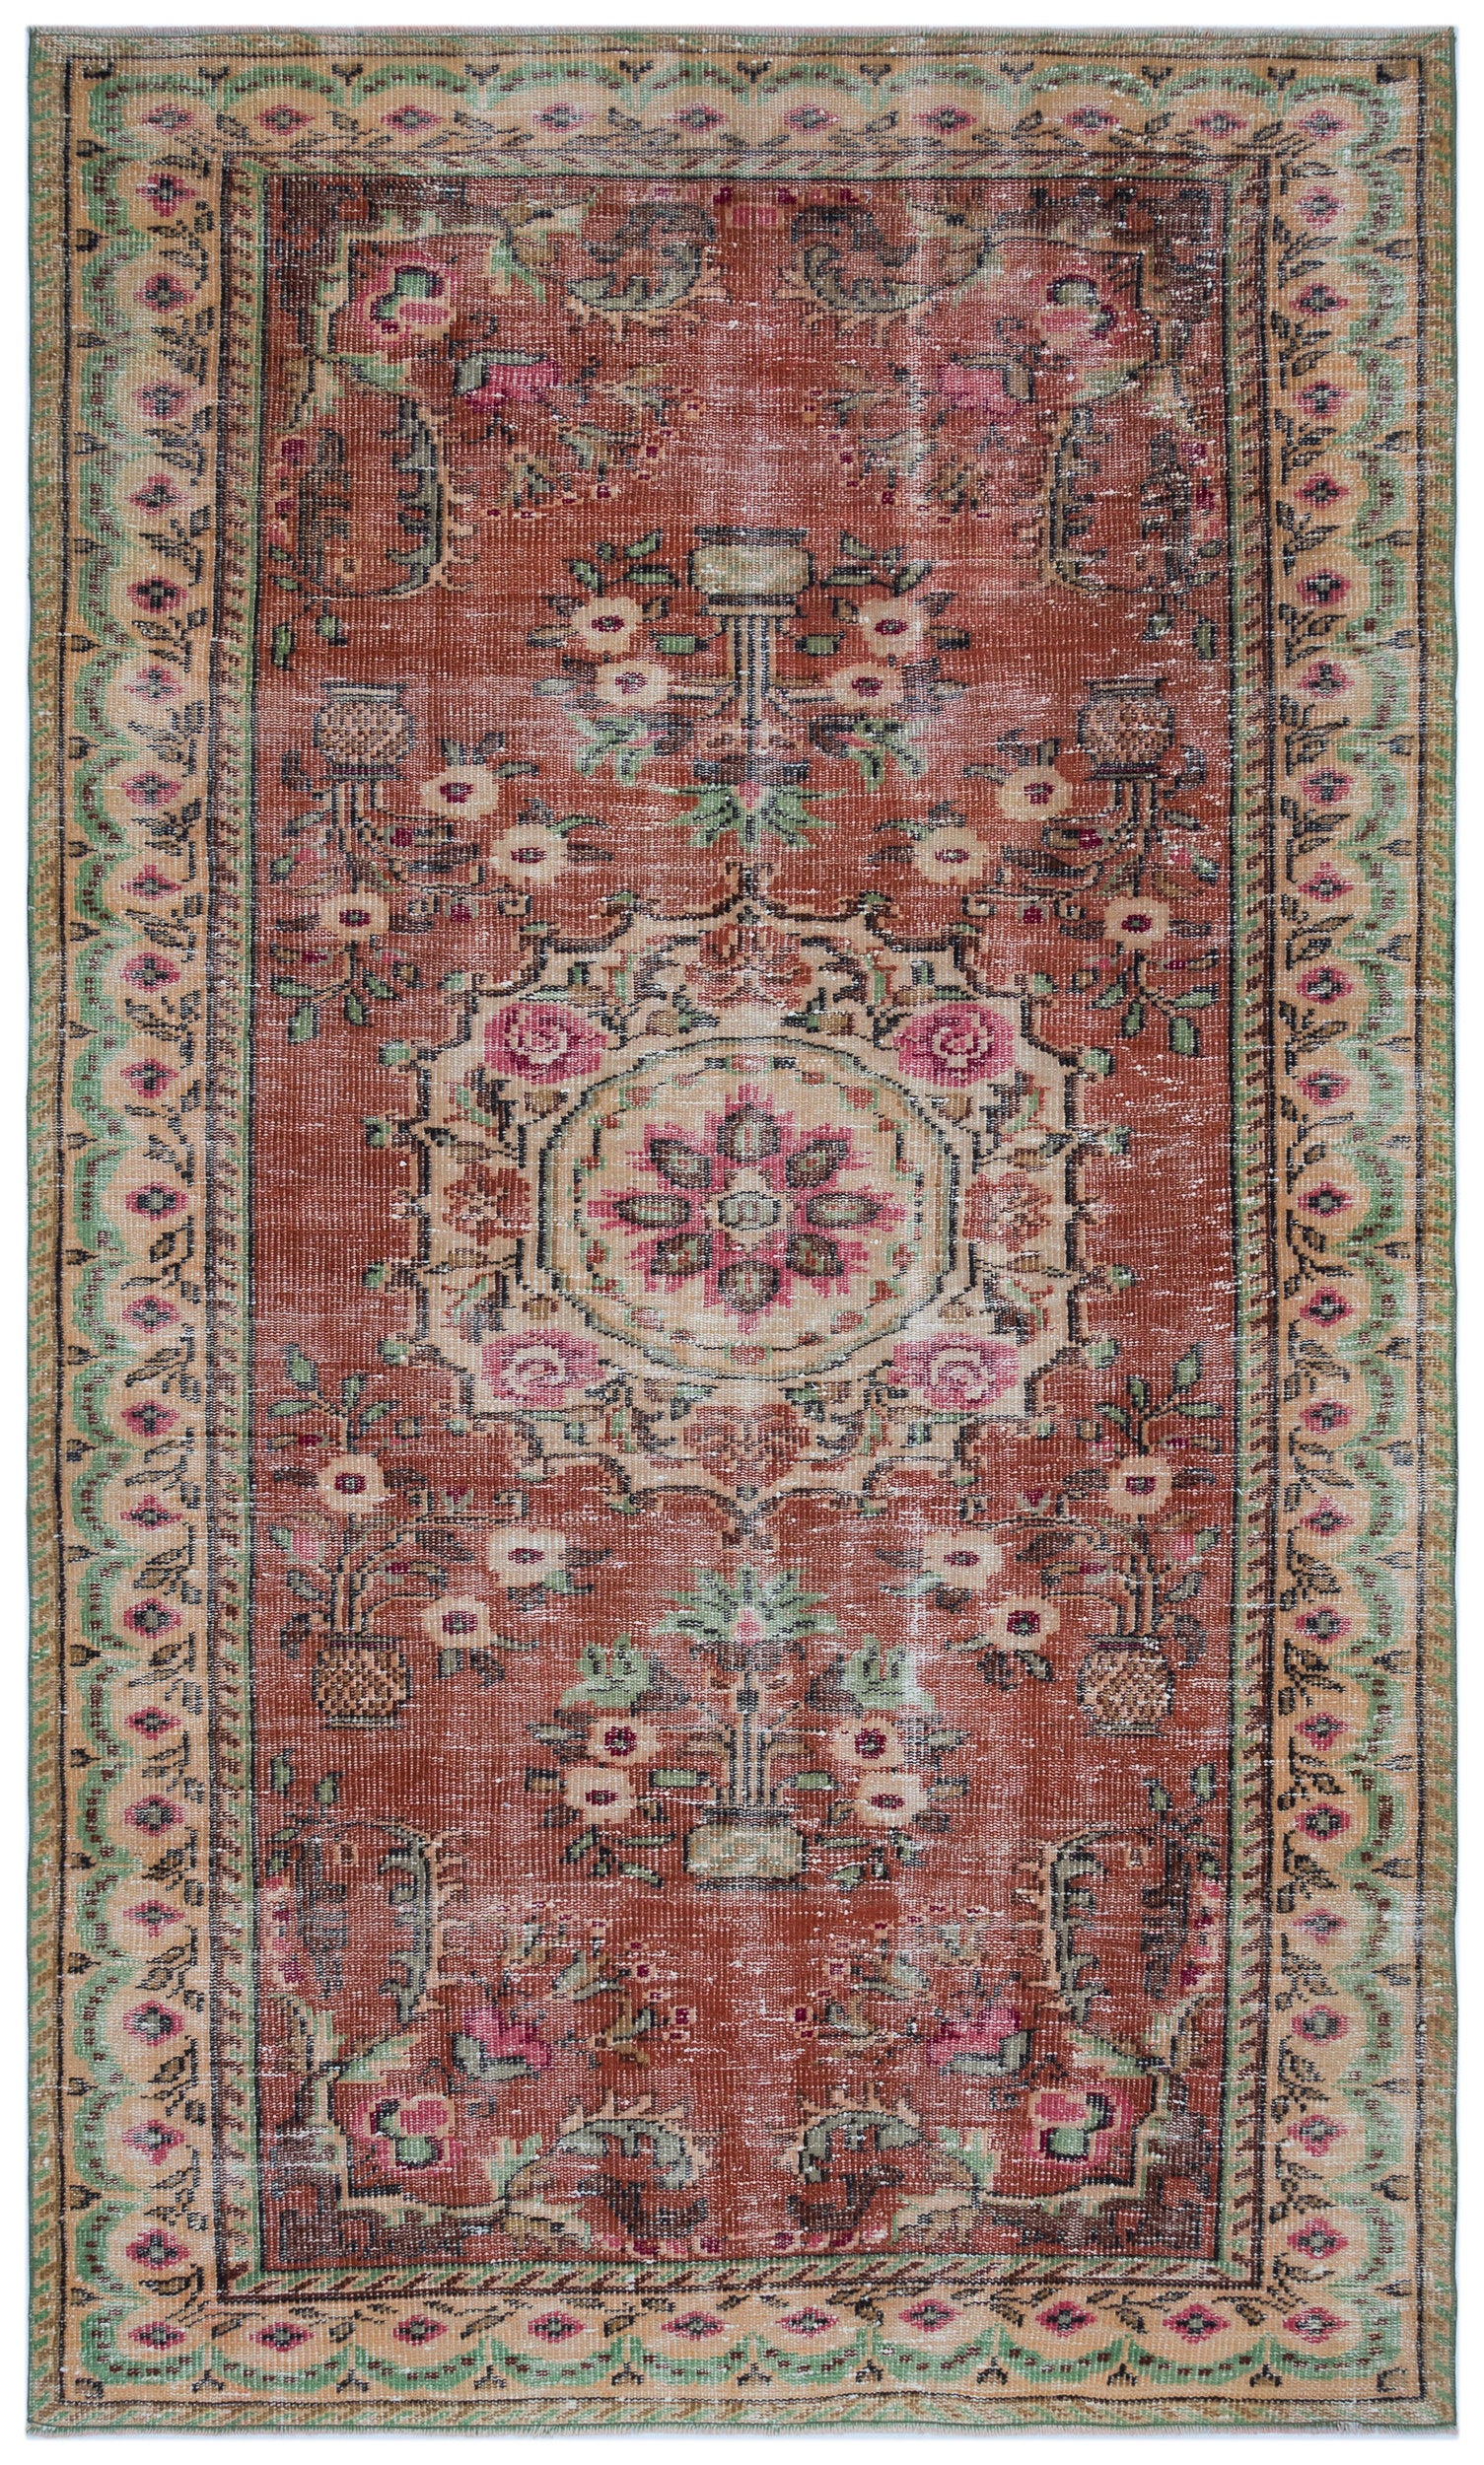 Retro Over Dyed Vintage Rug 5'4'' x 8'10'' ft 162 x 270 cm